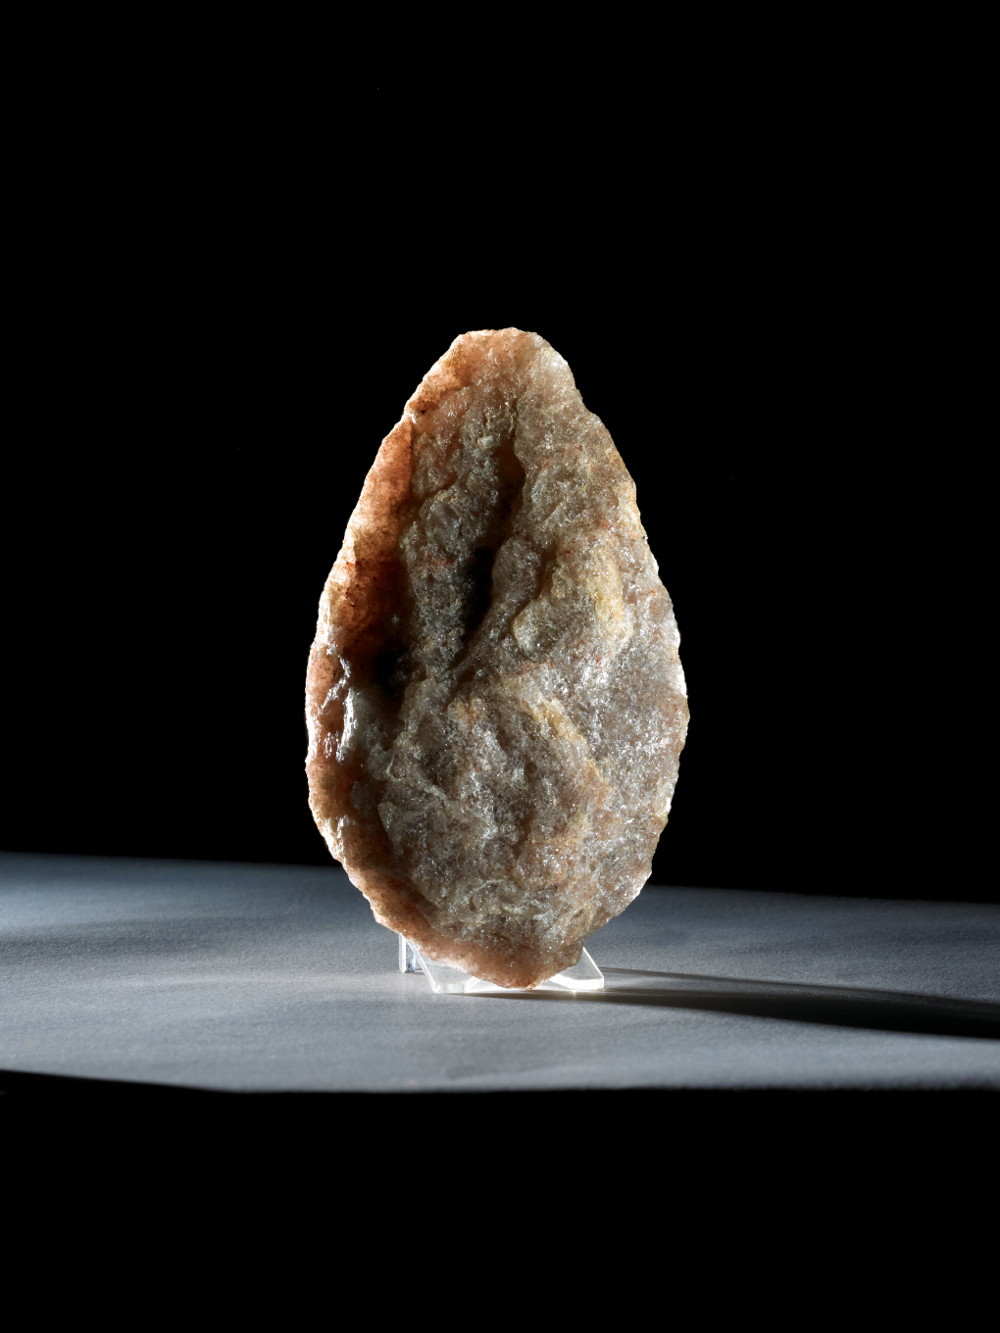 Olduvai handaxe - Quartz800,000–400,000 years oldFound in Olduvai Gorge, TanzaniaBritish MuseumThis handaxe is a masterpiece of the toolmaker's art. Made of quartz, a difficult material from which to make tools, it was thinned and refined to create a symmetrical, teardrop shape which added little to its usefulness. This suggests that the skill invested in producing beautiful handaxes may have had other purposes – they may have been status symbols or used in rituals. By surpassing functional demands, handaxes may be said to represent the earliest indication of artistic endeavour.